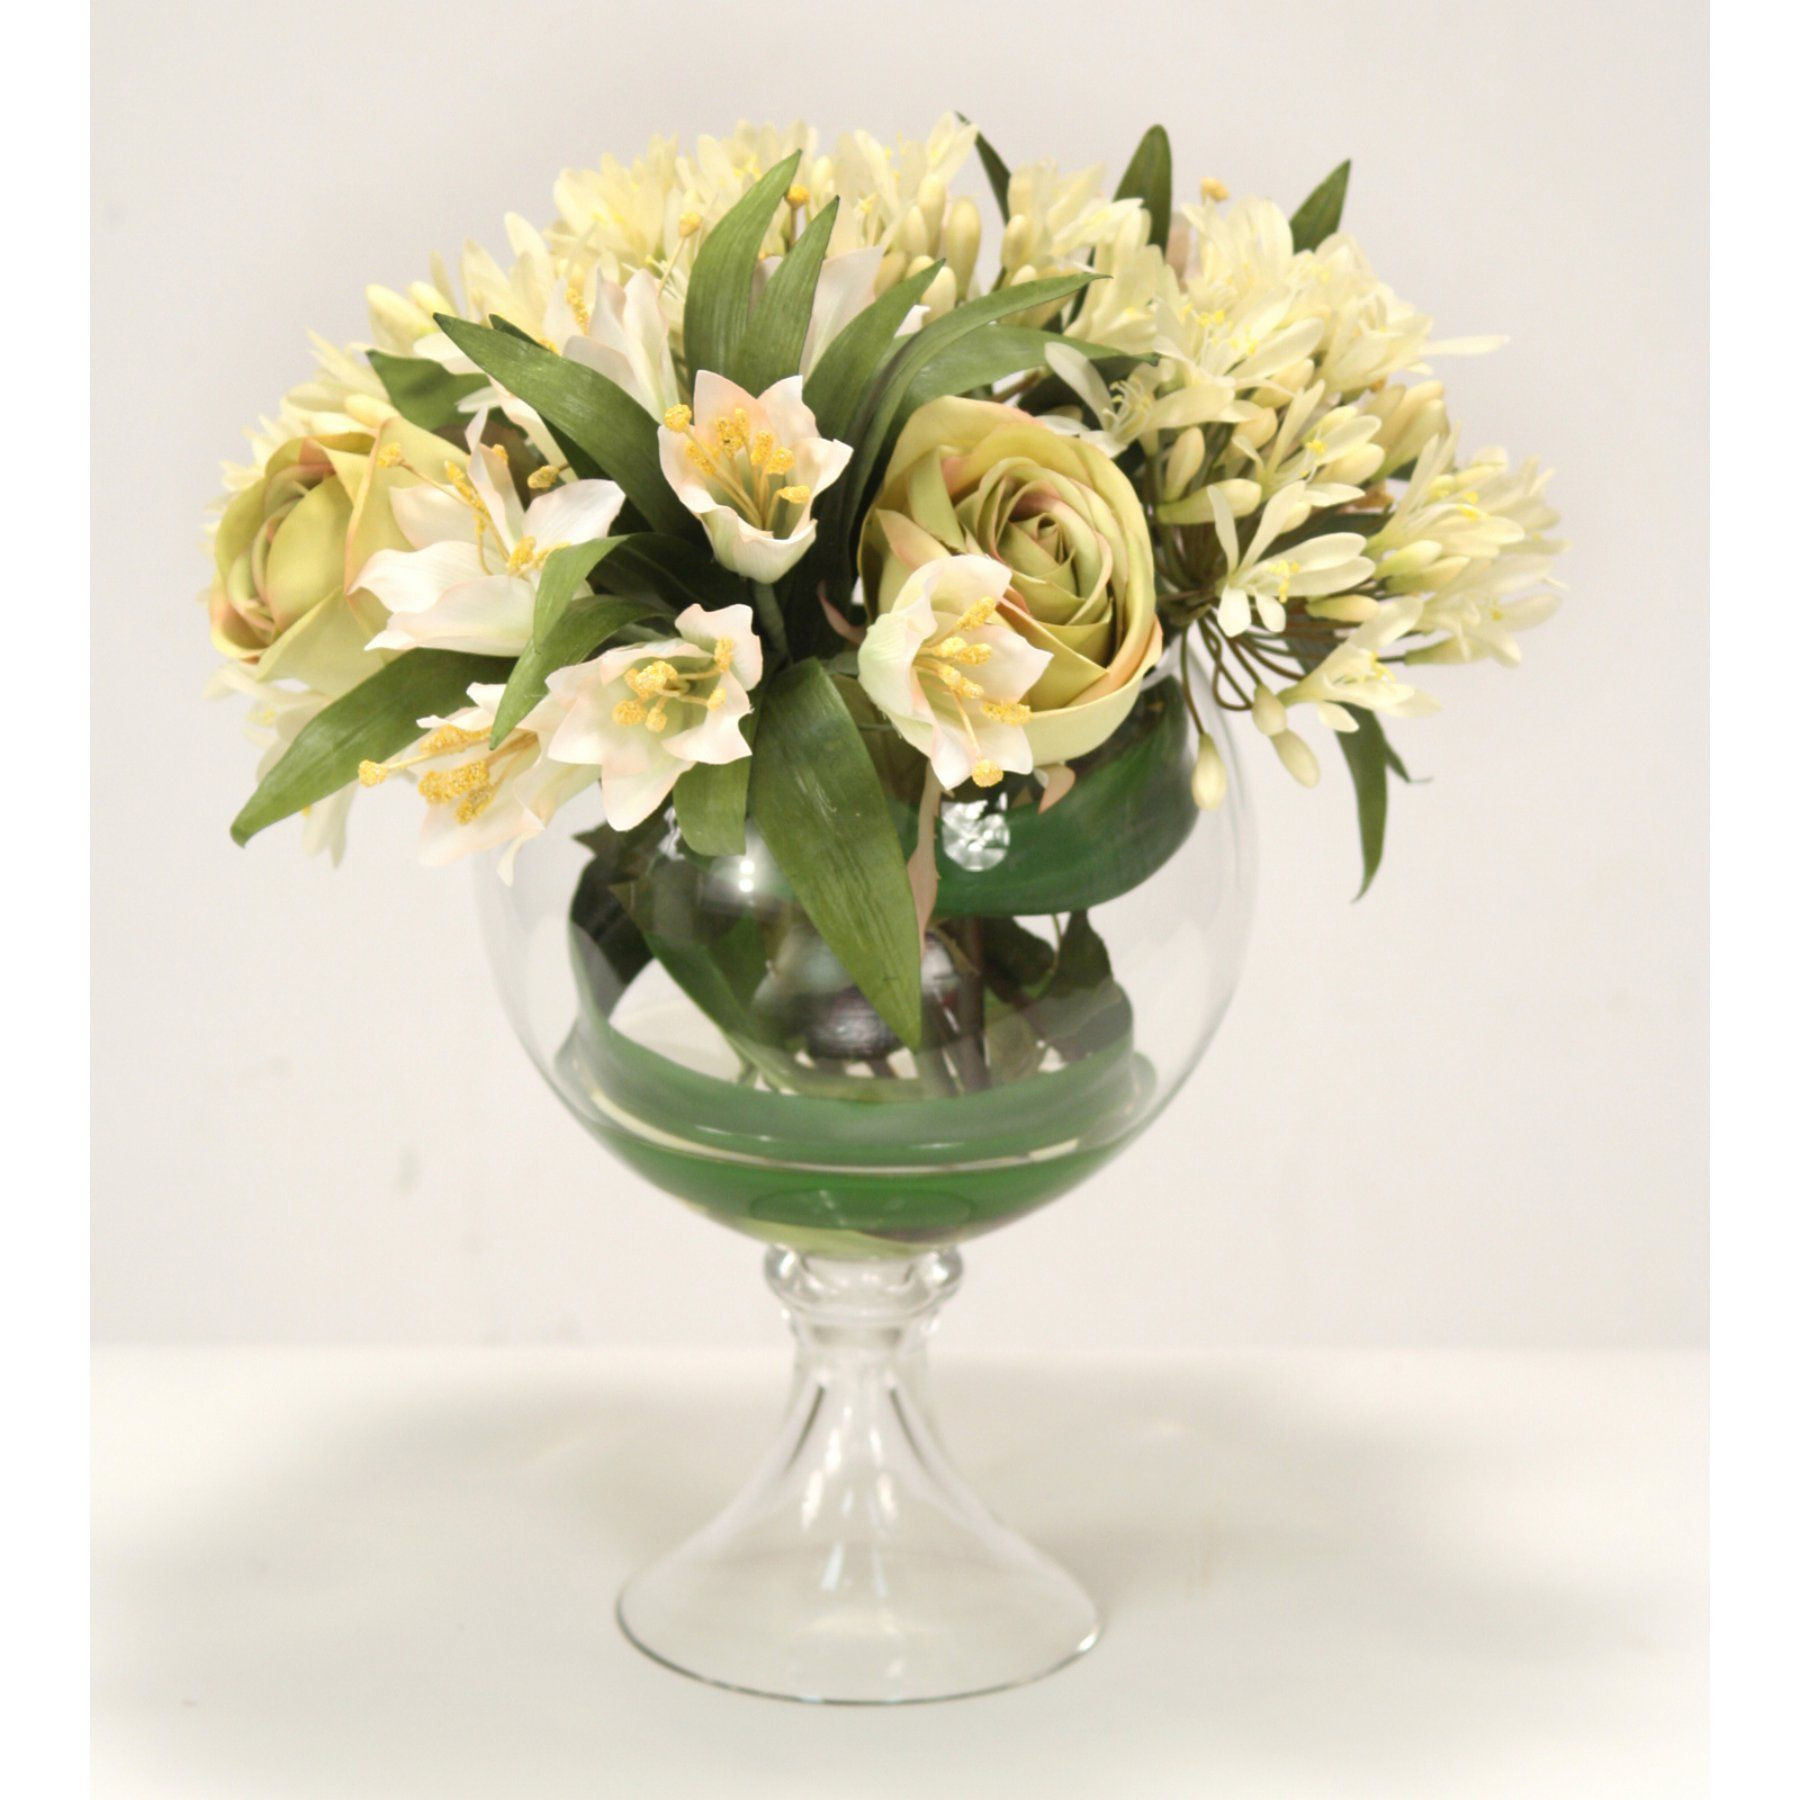 artificial flowers in vase marks and spencer of distinctive designs waterlook silk roses with agapanthus 17069 for distinctive designs waterlook silk roses with agapanthus 17069